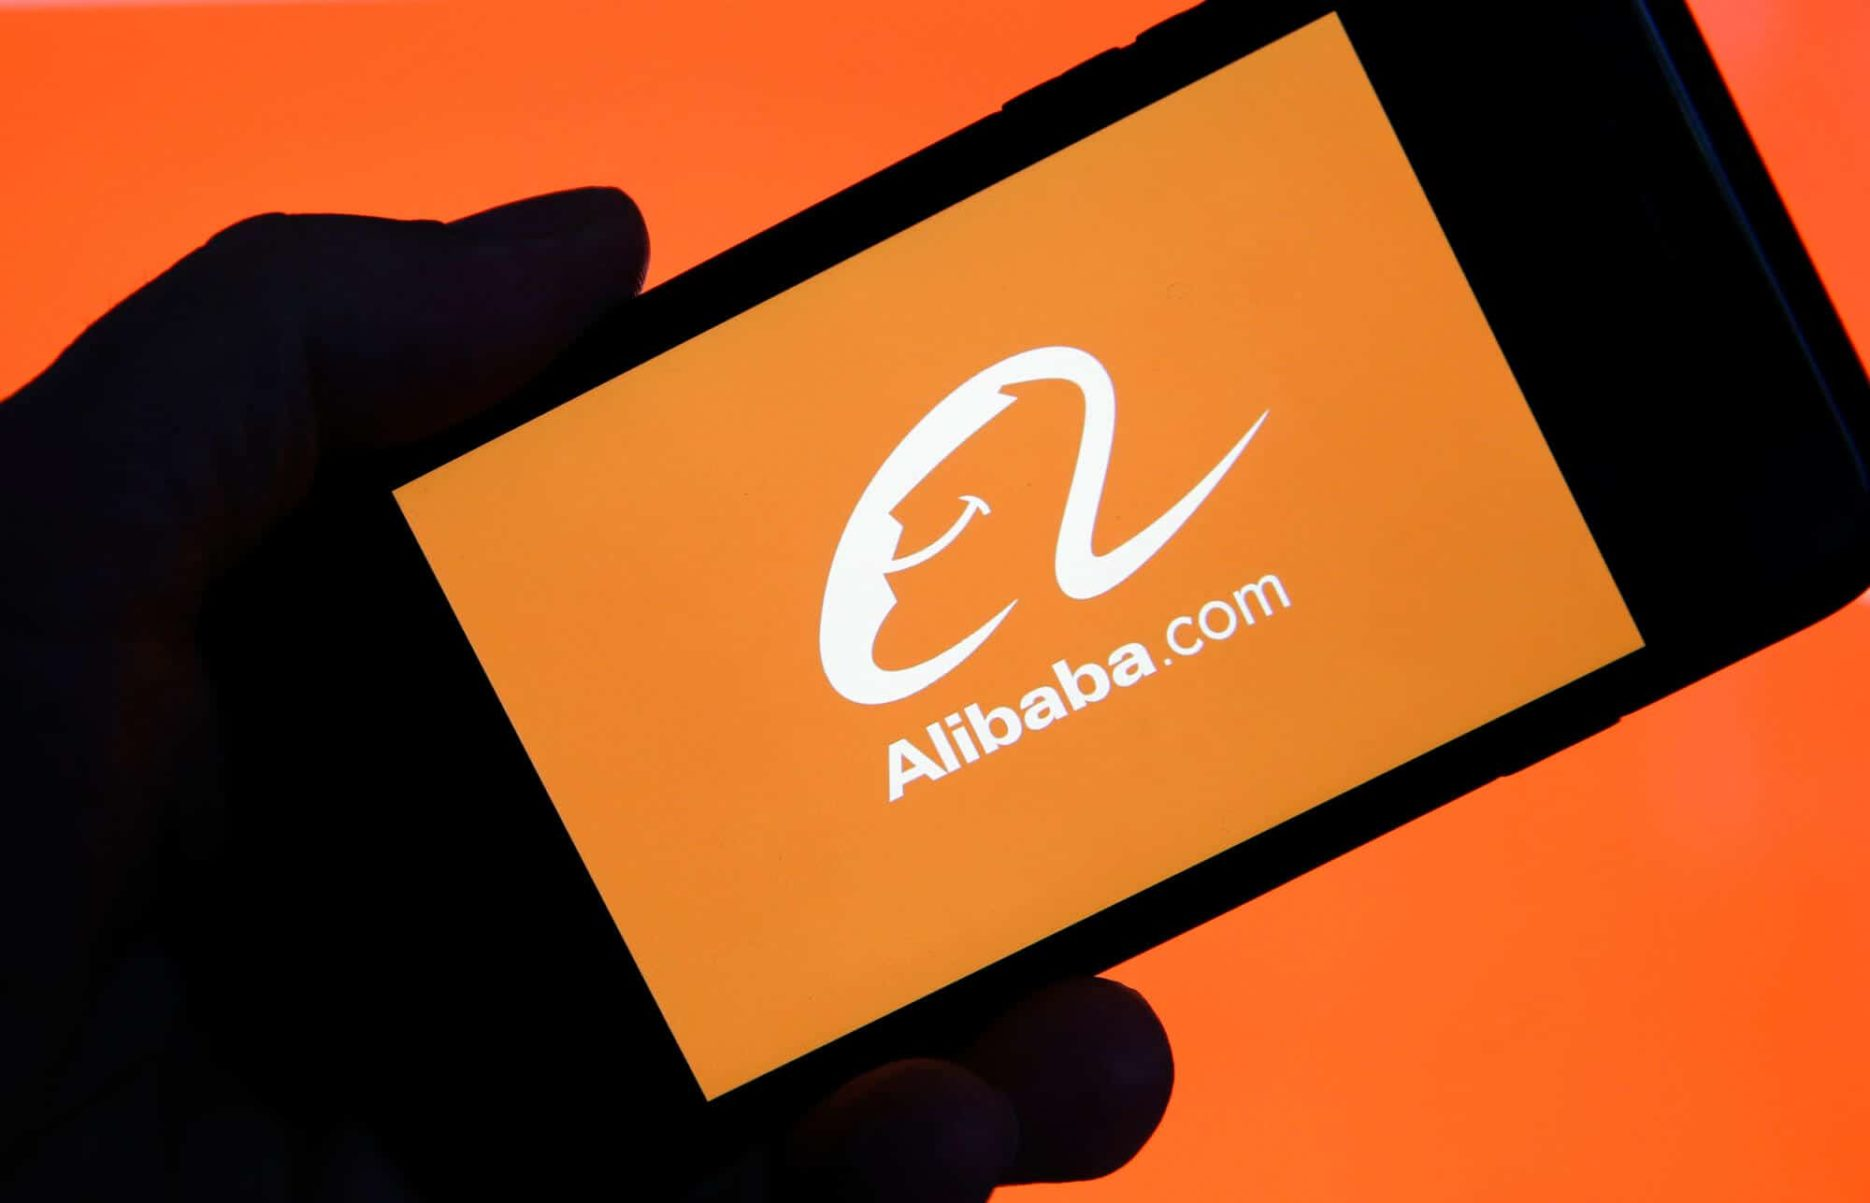 Alibaba phone screen